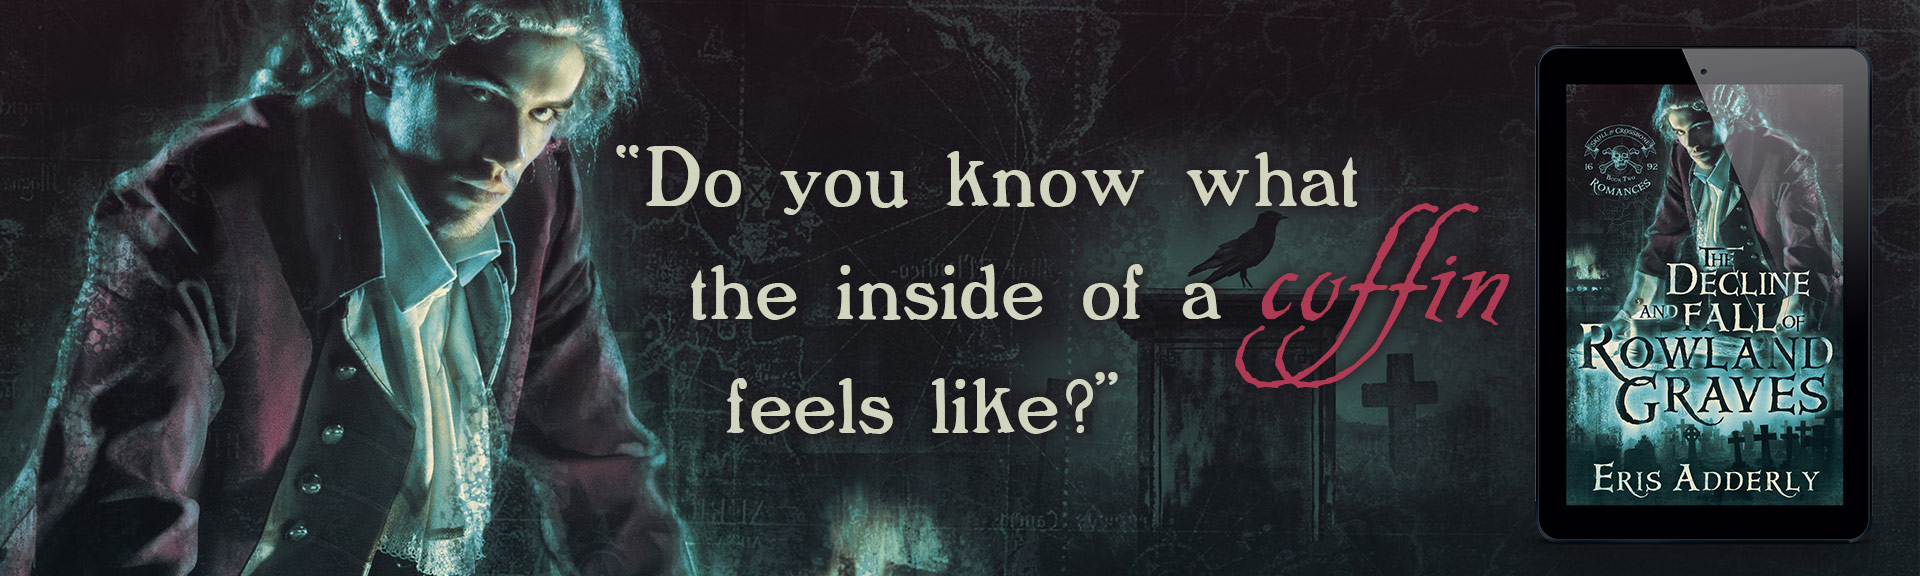 Do you know what the inside of a coffin feels like?